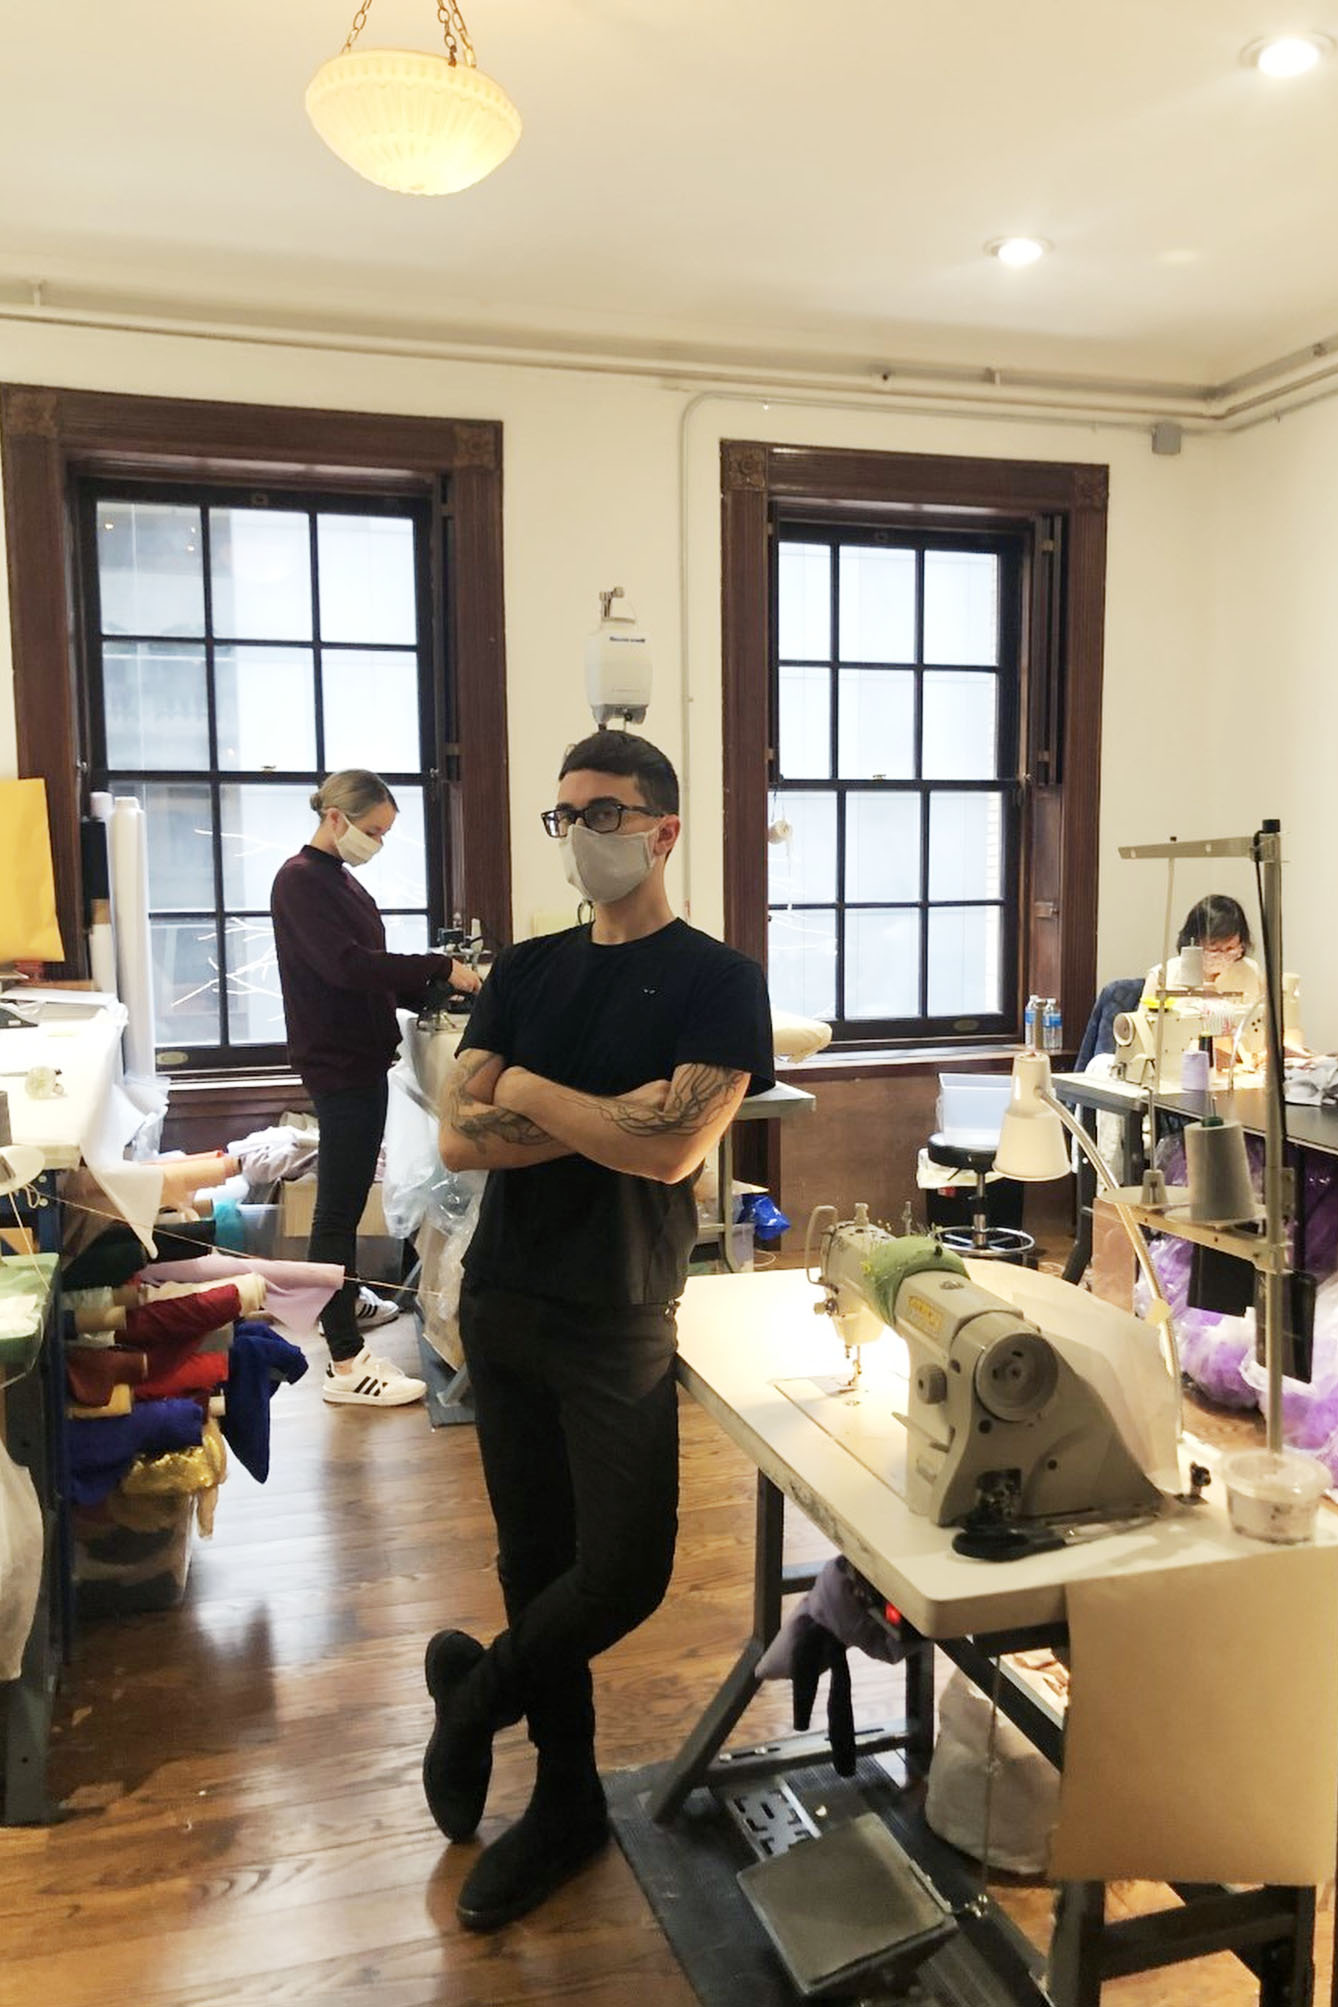 Christian Siriano is leading a team to make masks and gowns for relief workers.